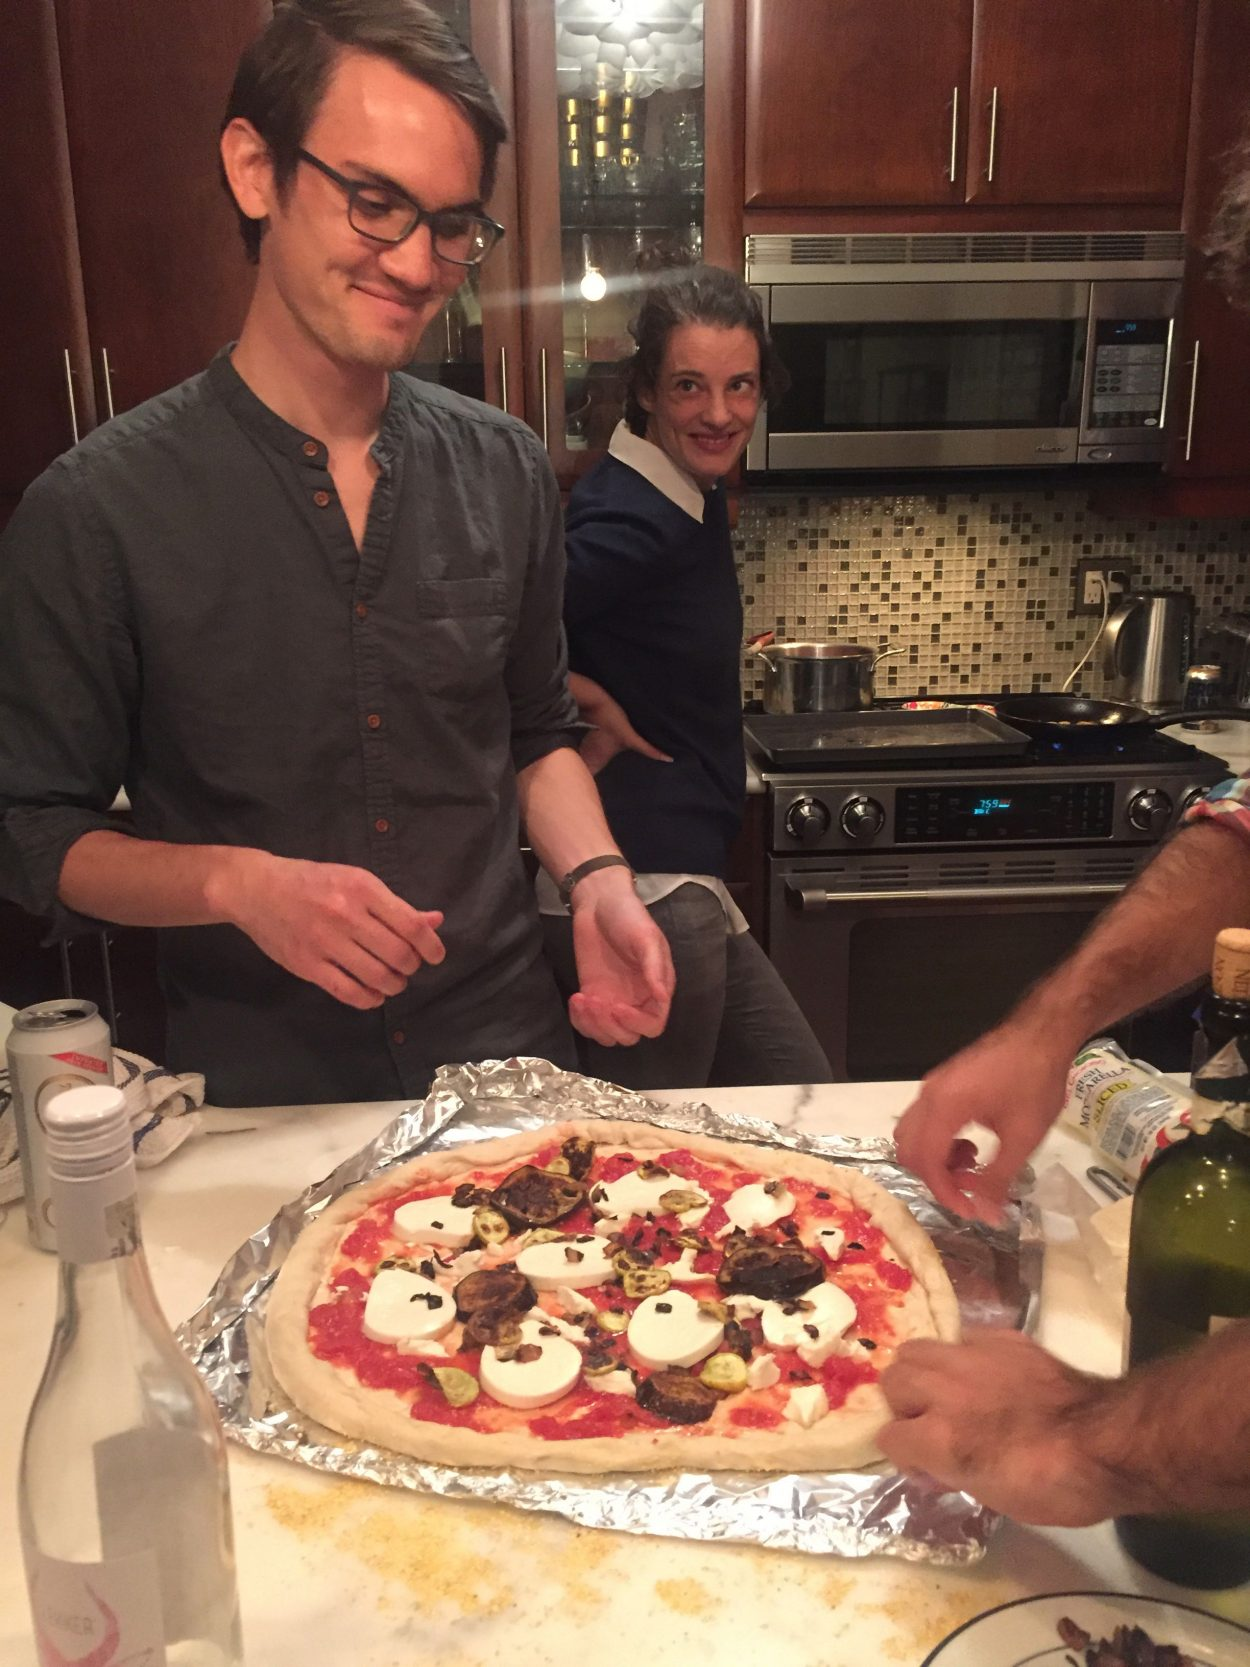 Photo of two people making pizza in a home kitchen